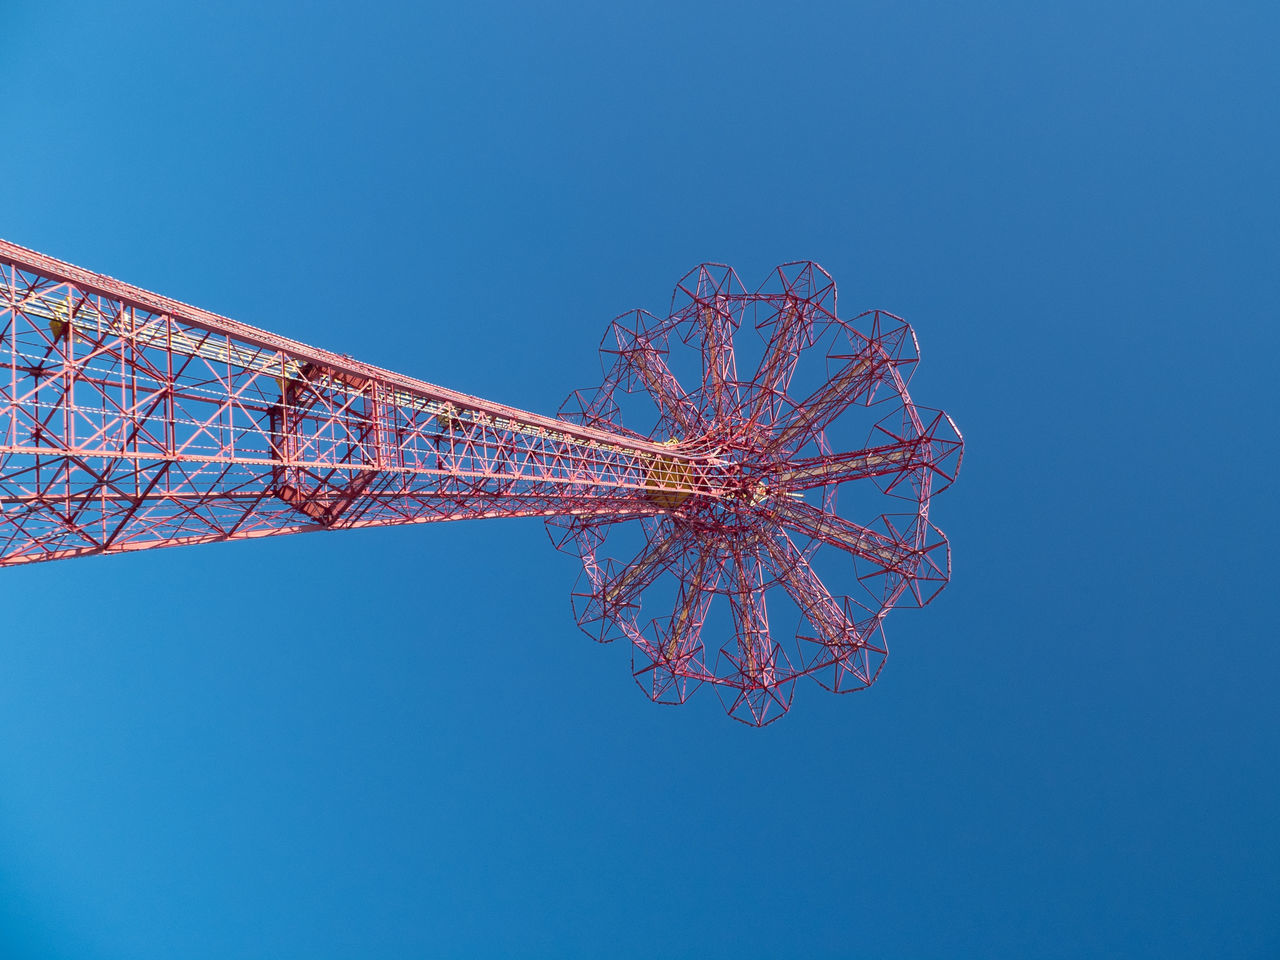 Low Angle View Of Parachute Jump Against Clear Blue Sky